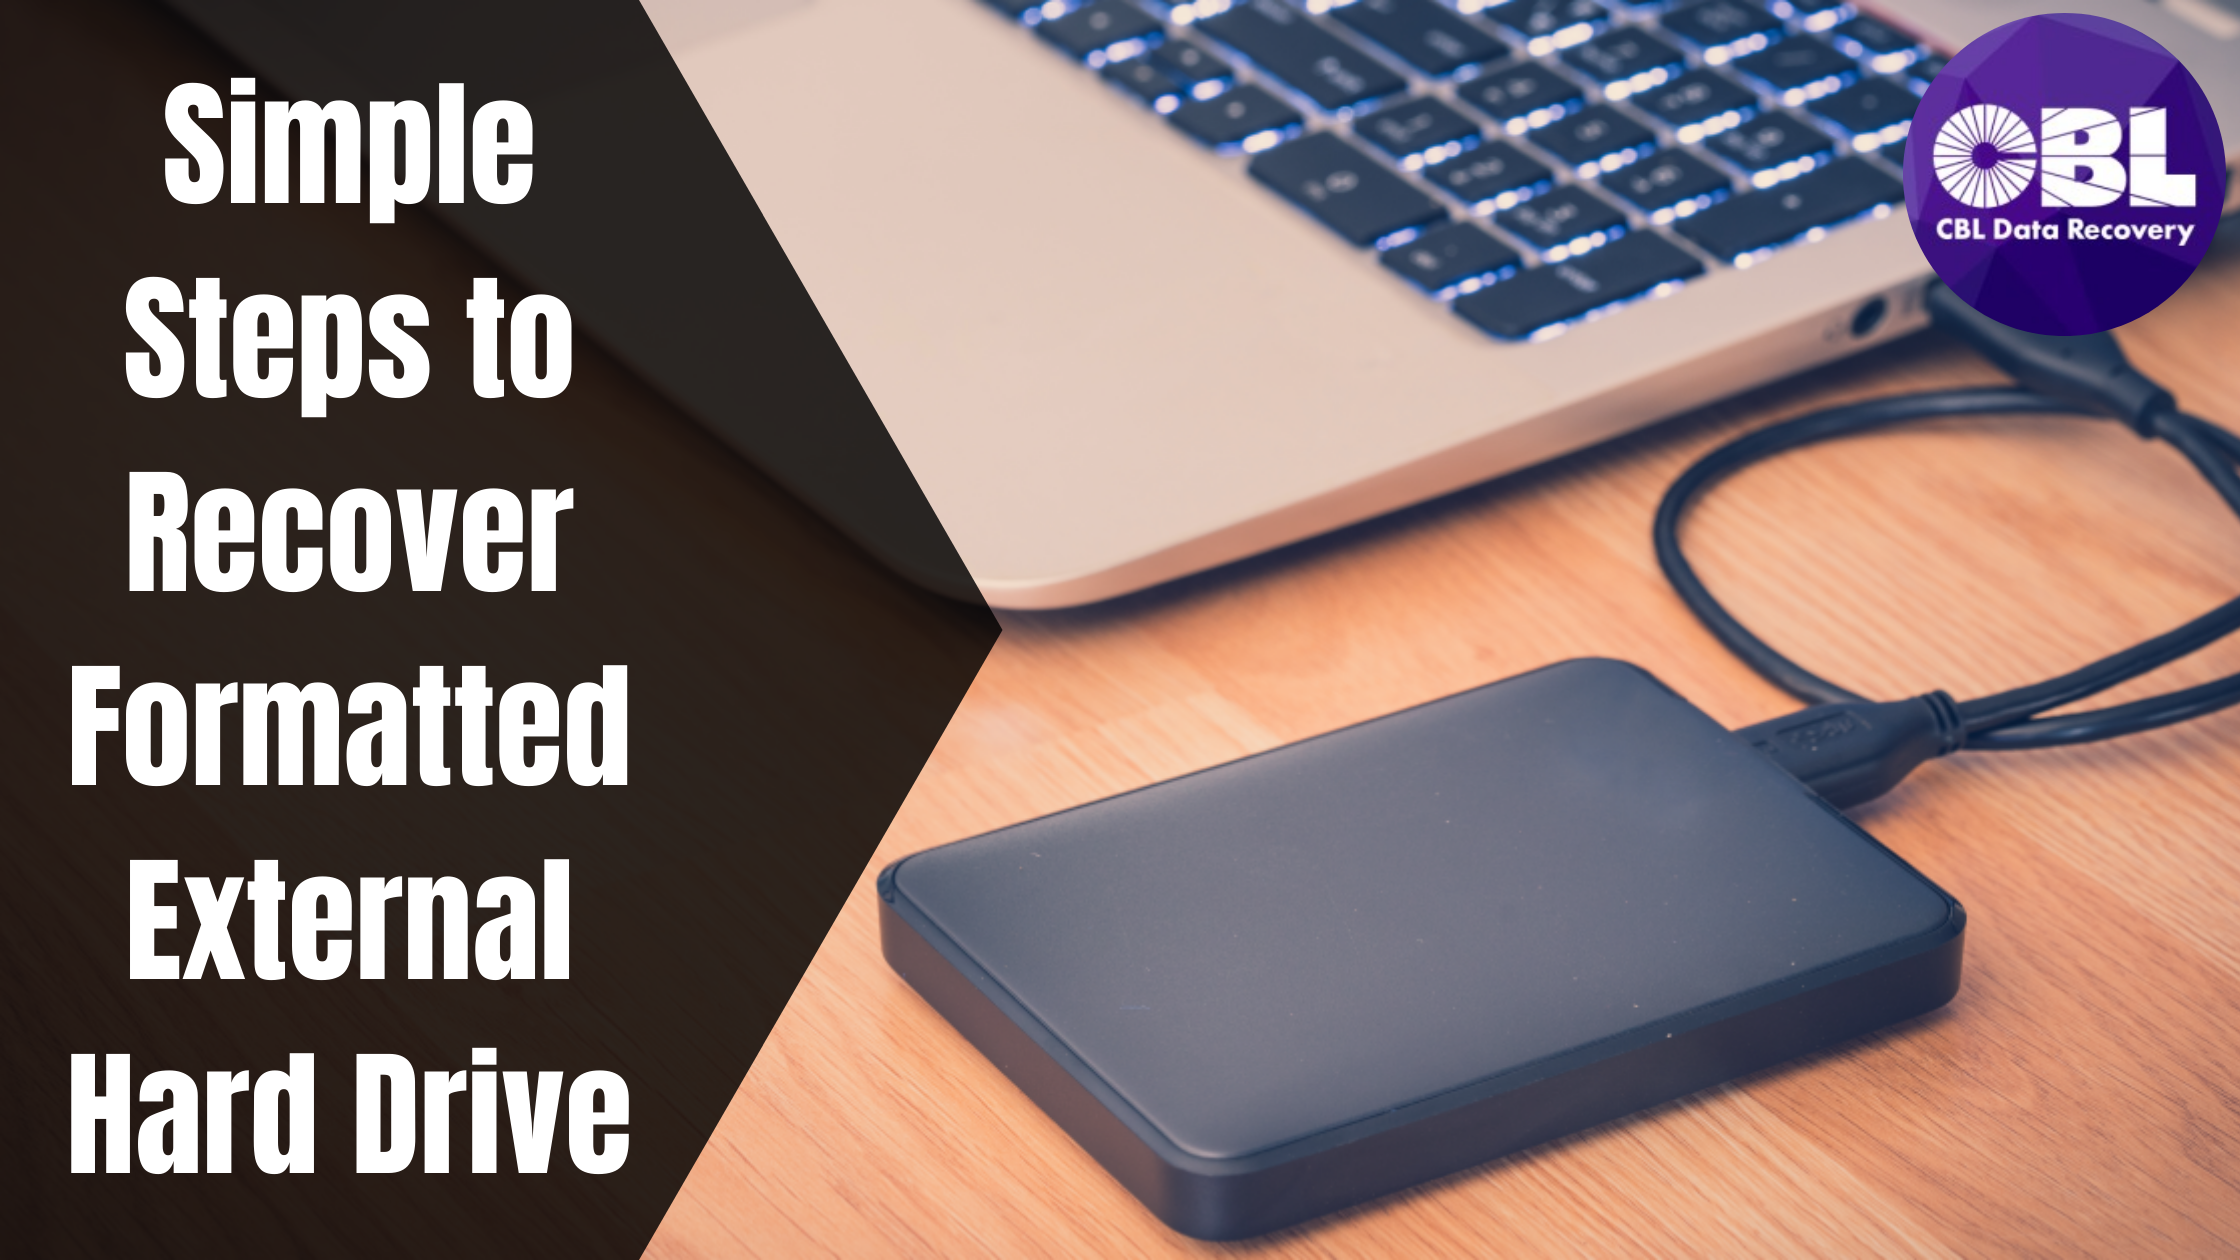 Simple Steps to Recover Formatted External Hard Drive!